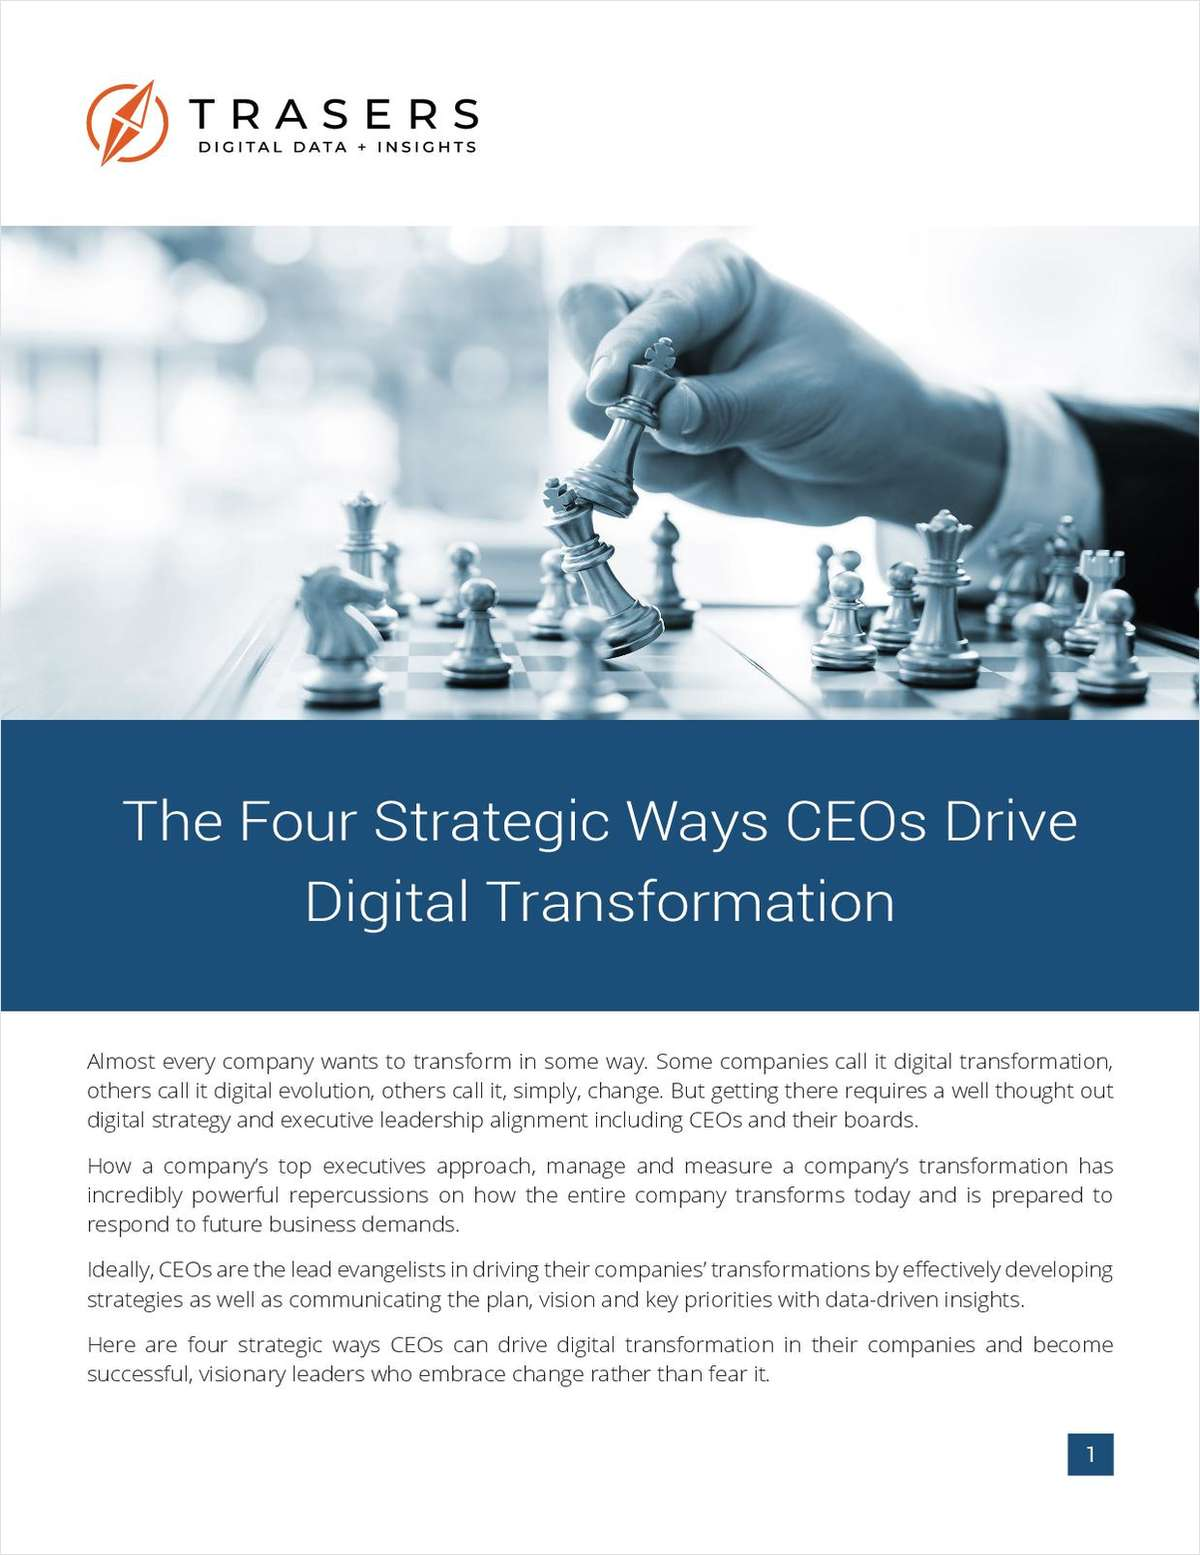 The Four Strategic Ways CEOs Drive Digital Transformation